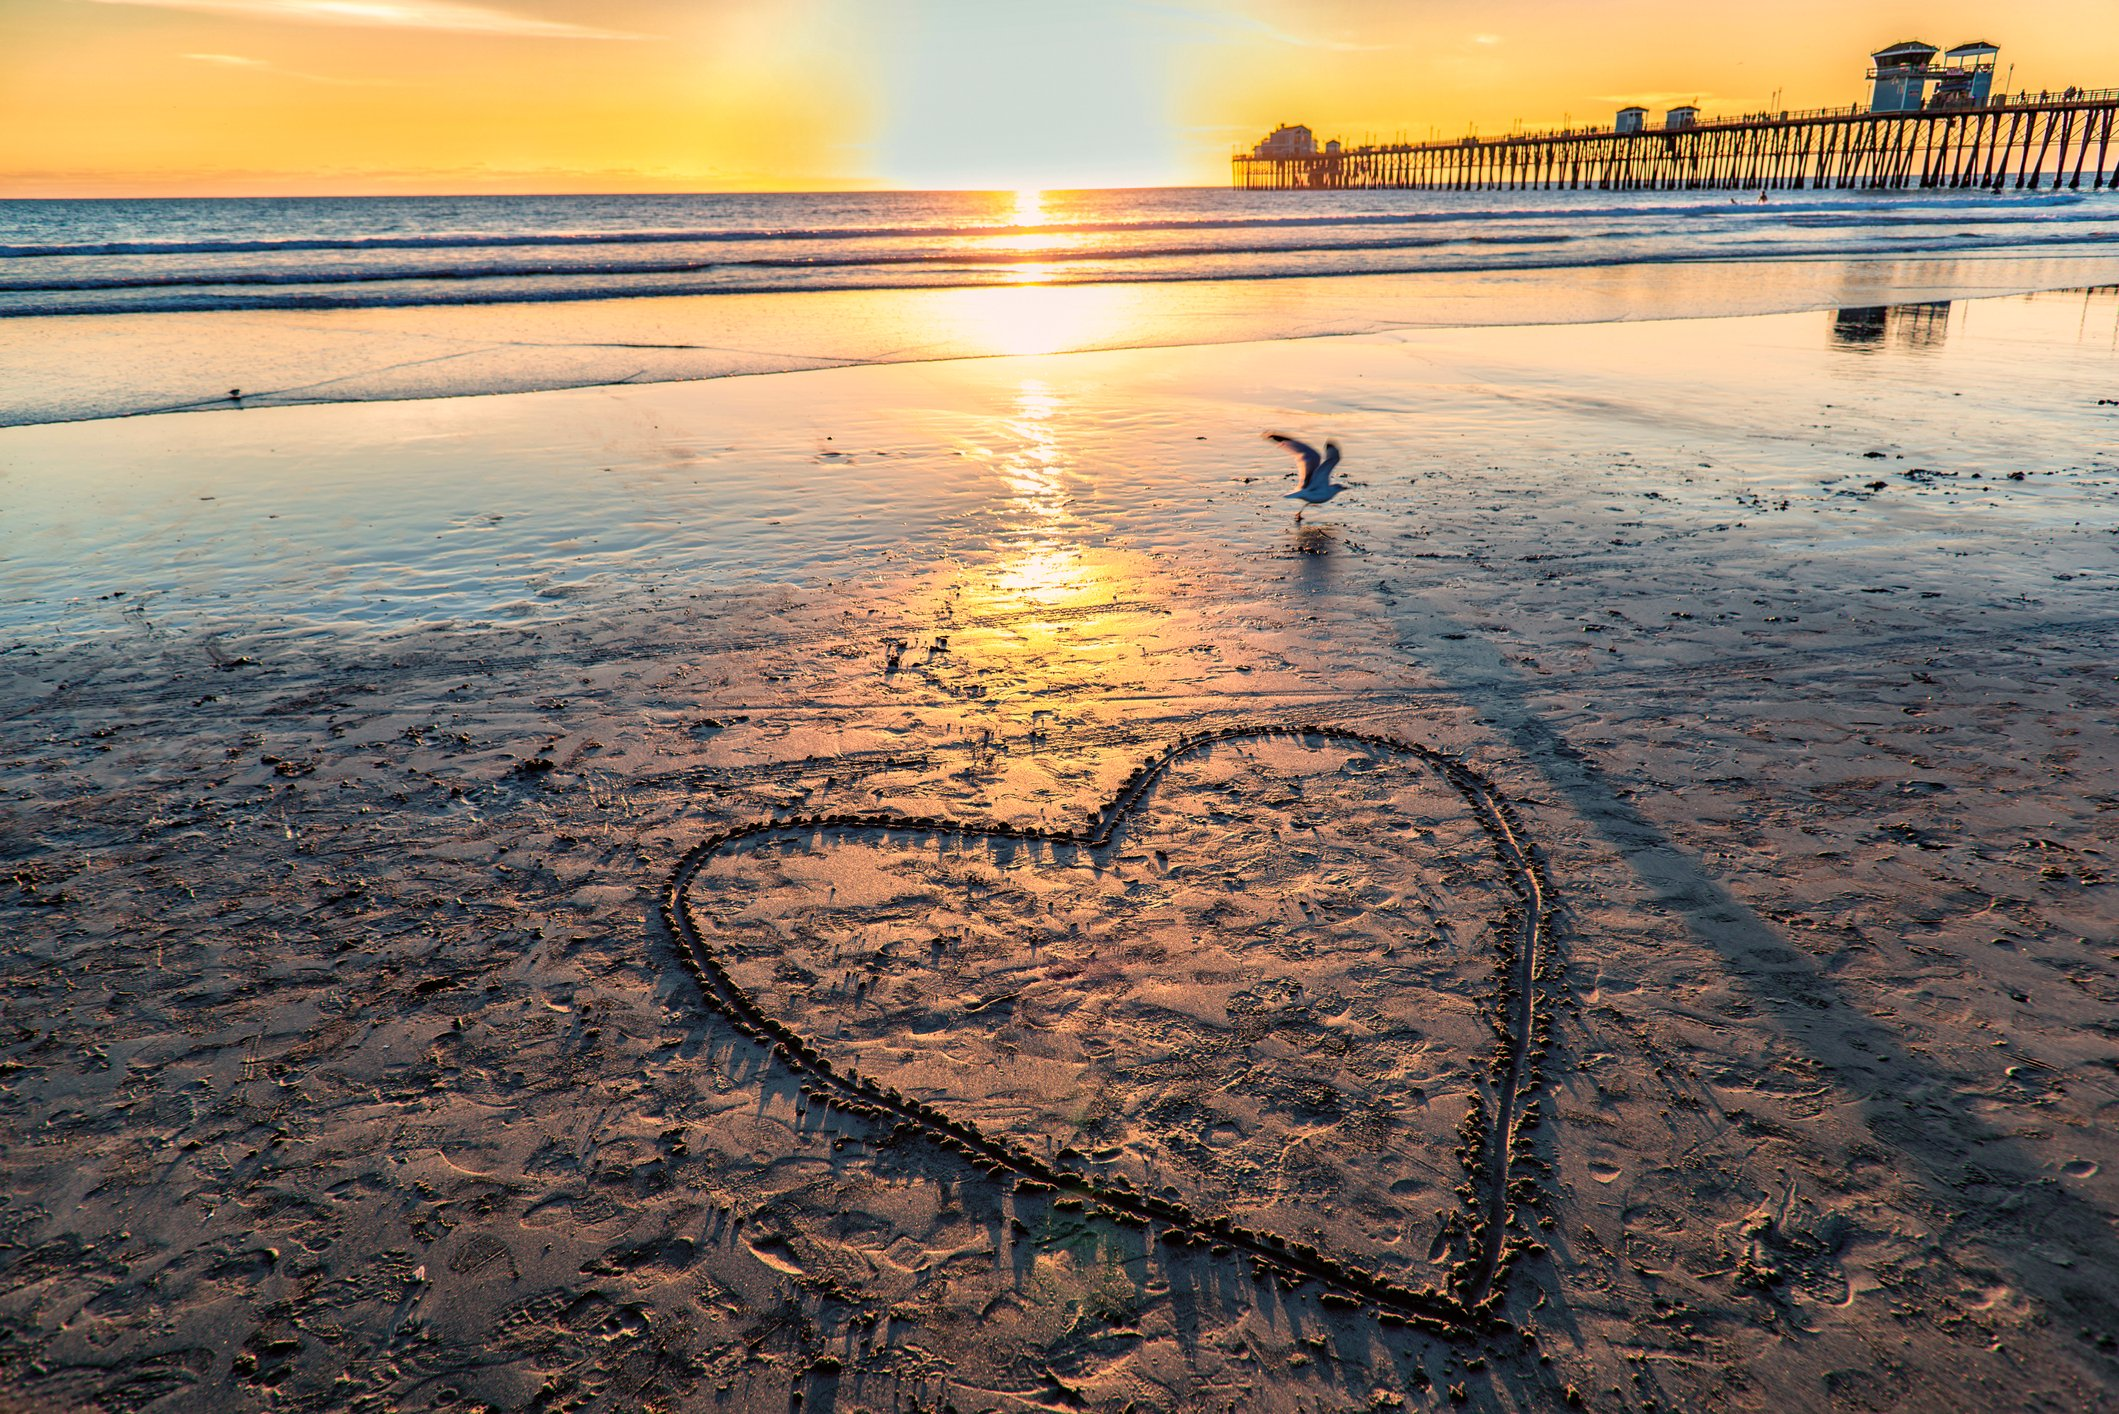 A heart drawn in the sand on Oceanside beach near the pierl